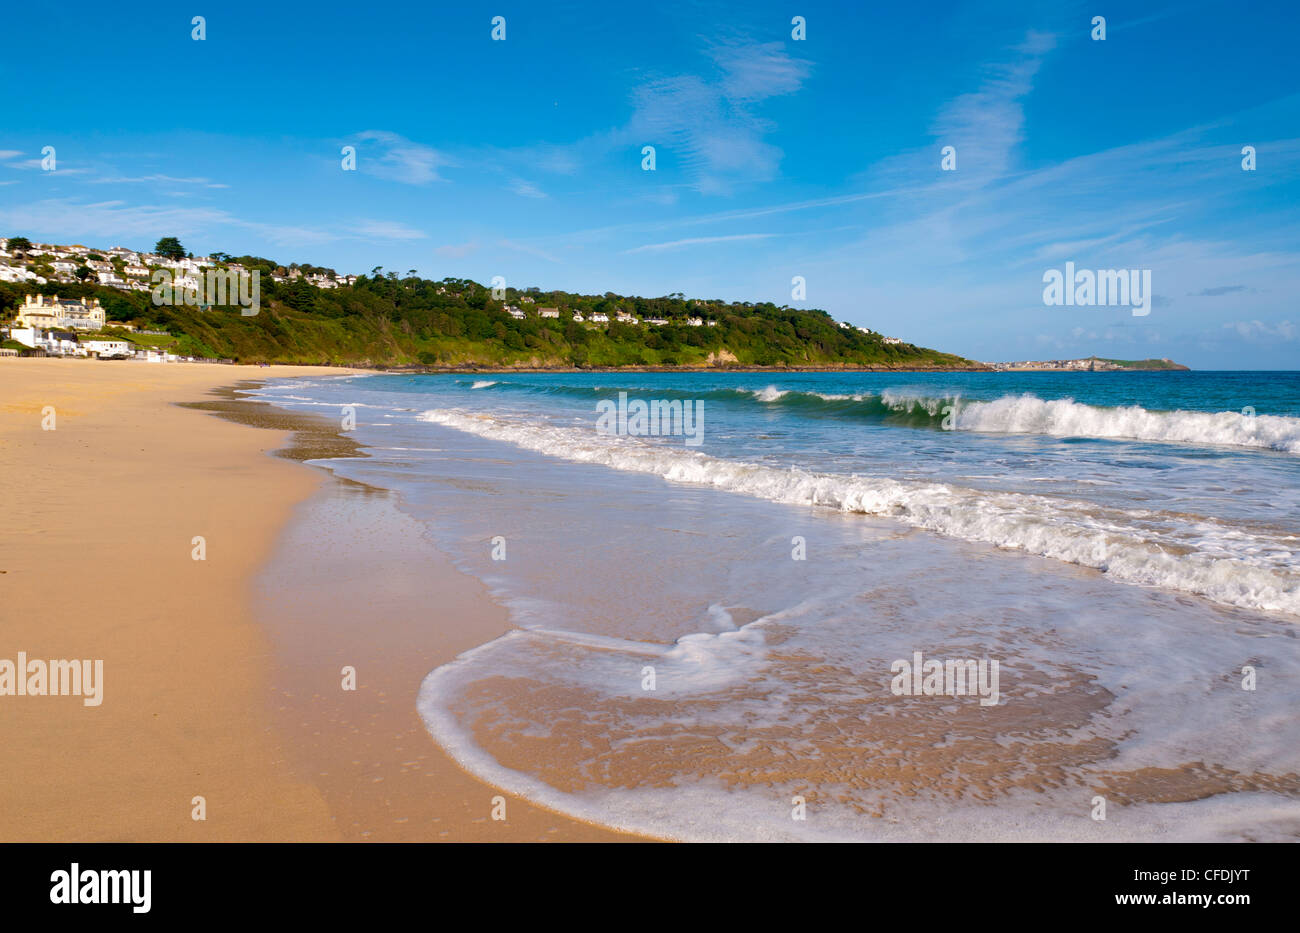 Carbis Bay Beach, Cornwall, Angleterre, Royaume-Uni, Europe Banque D'Images